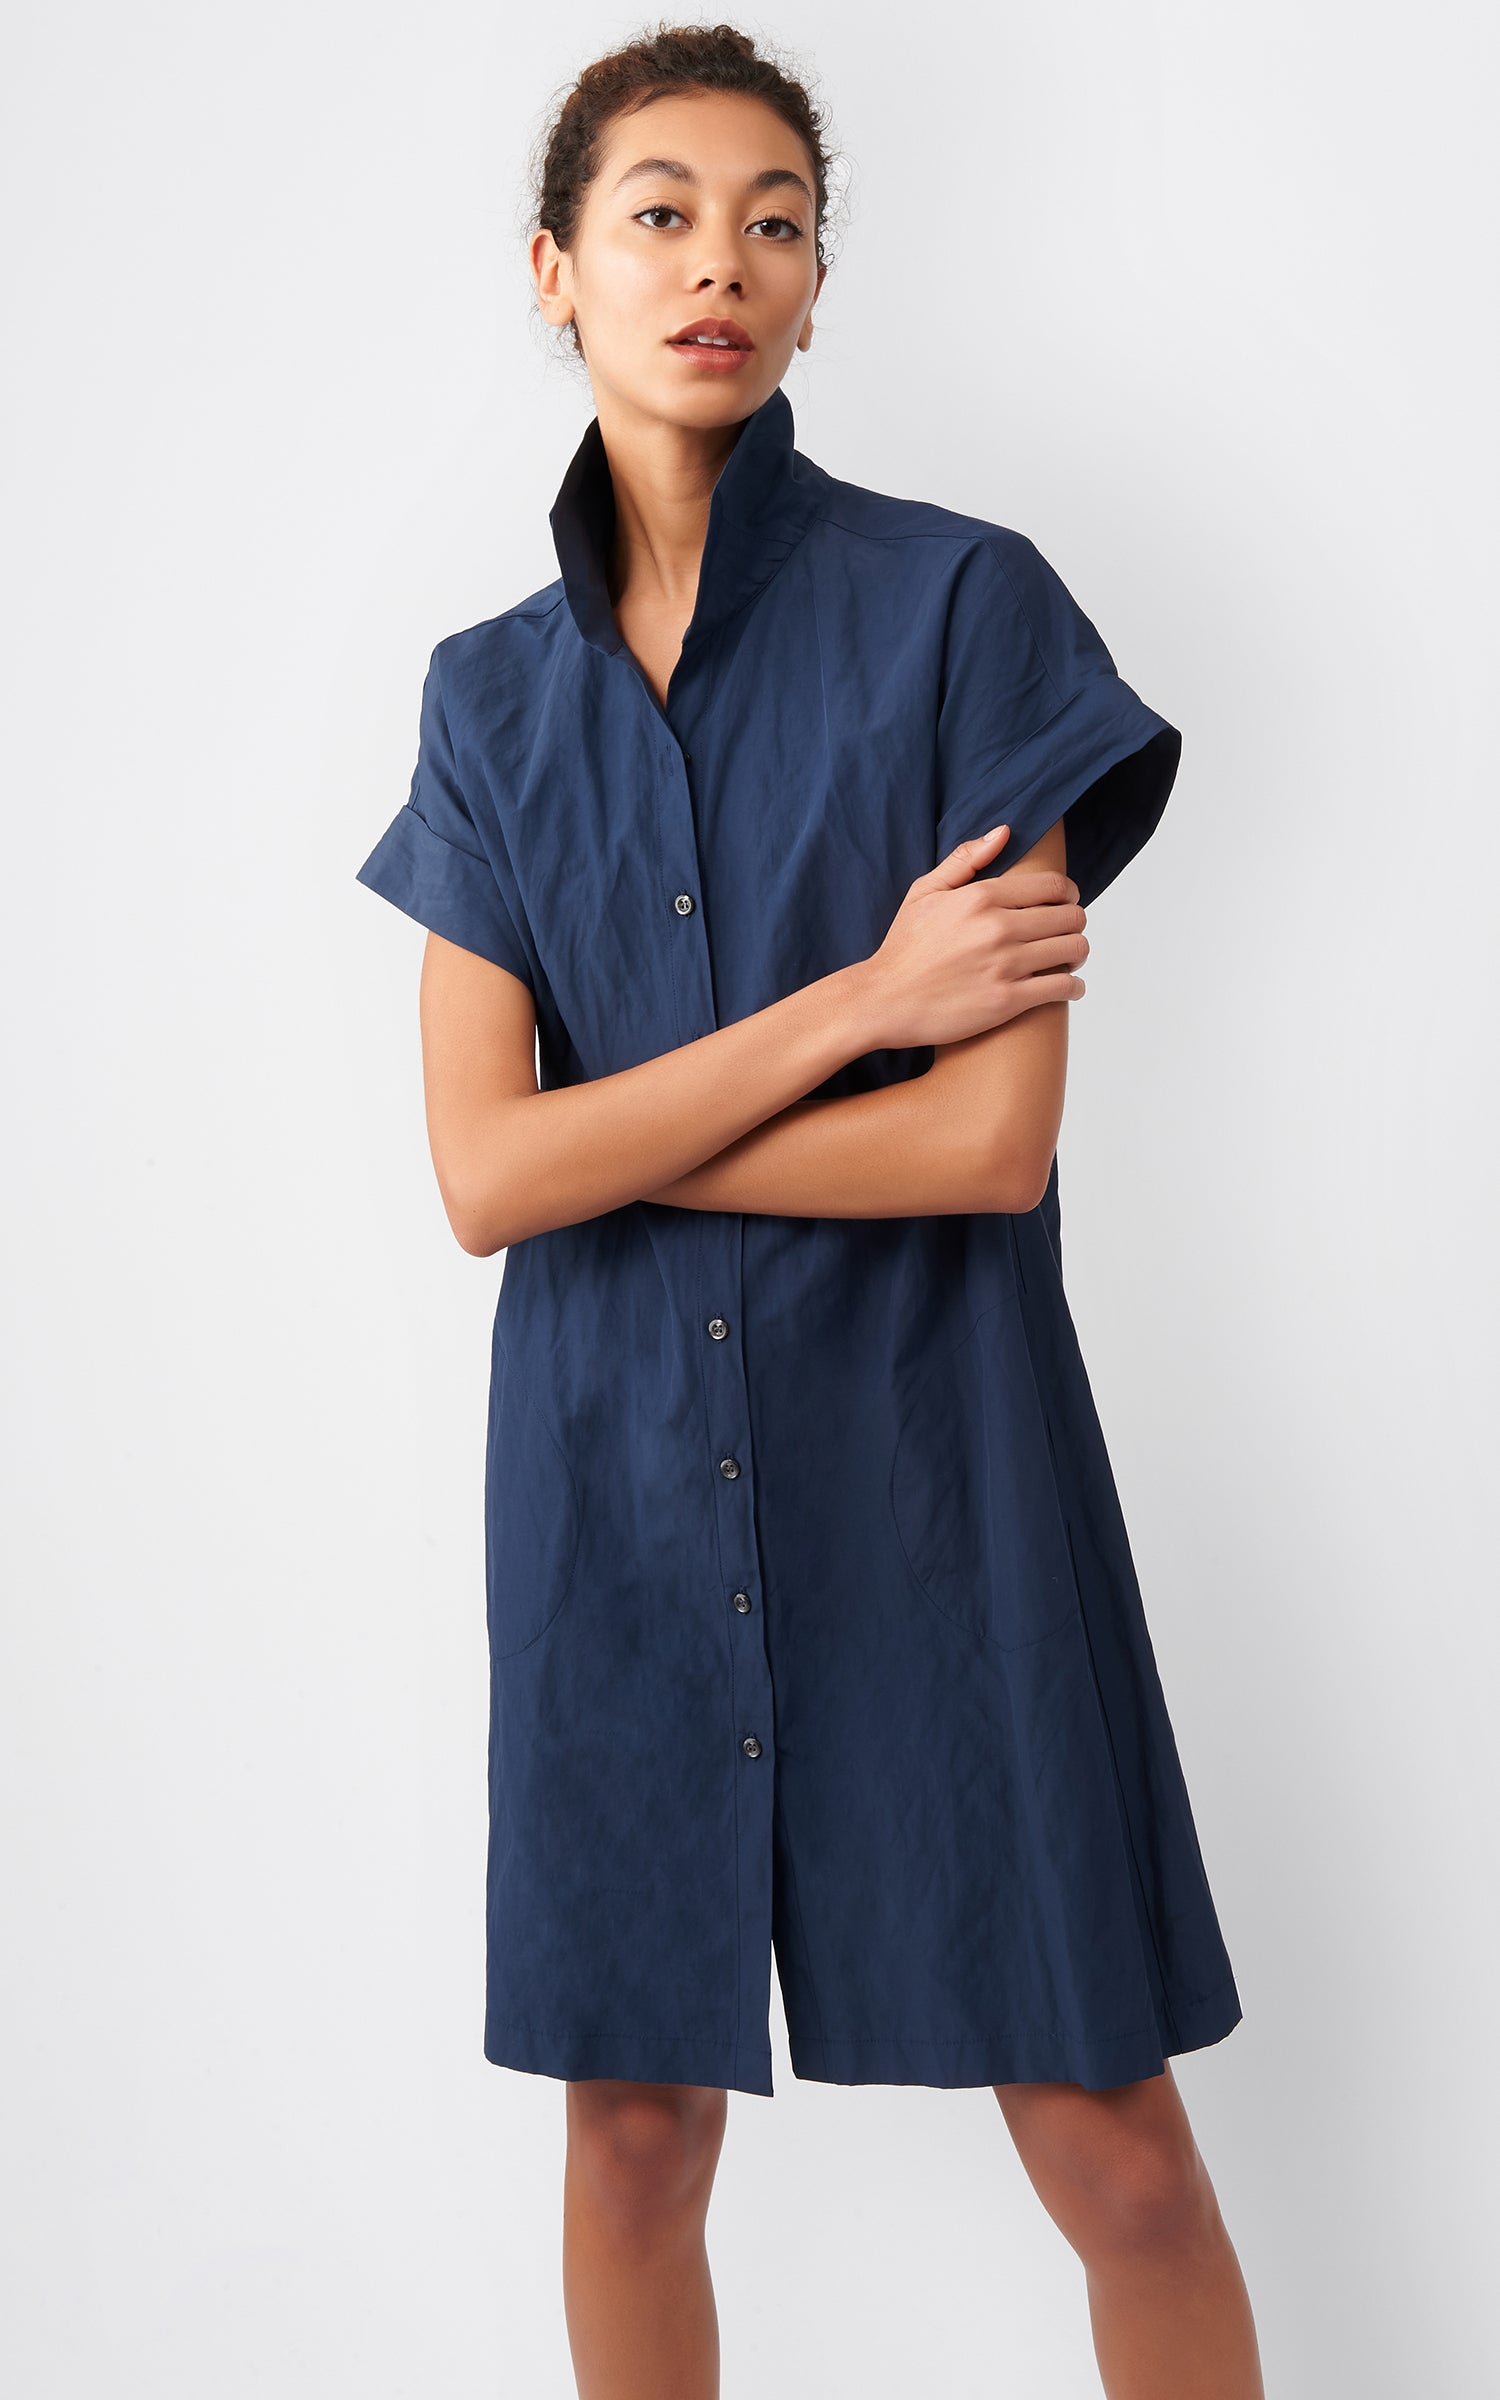 KIMONO DRESS - NAVY COTTON/NYLON